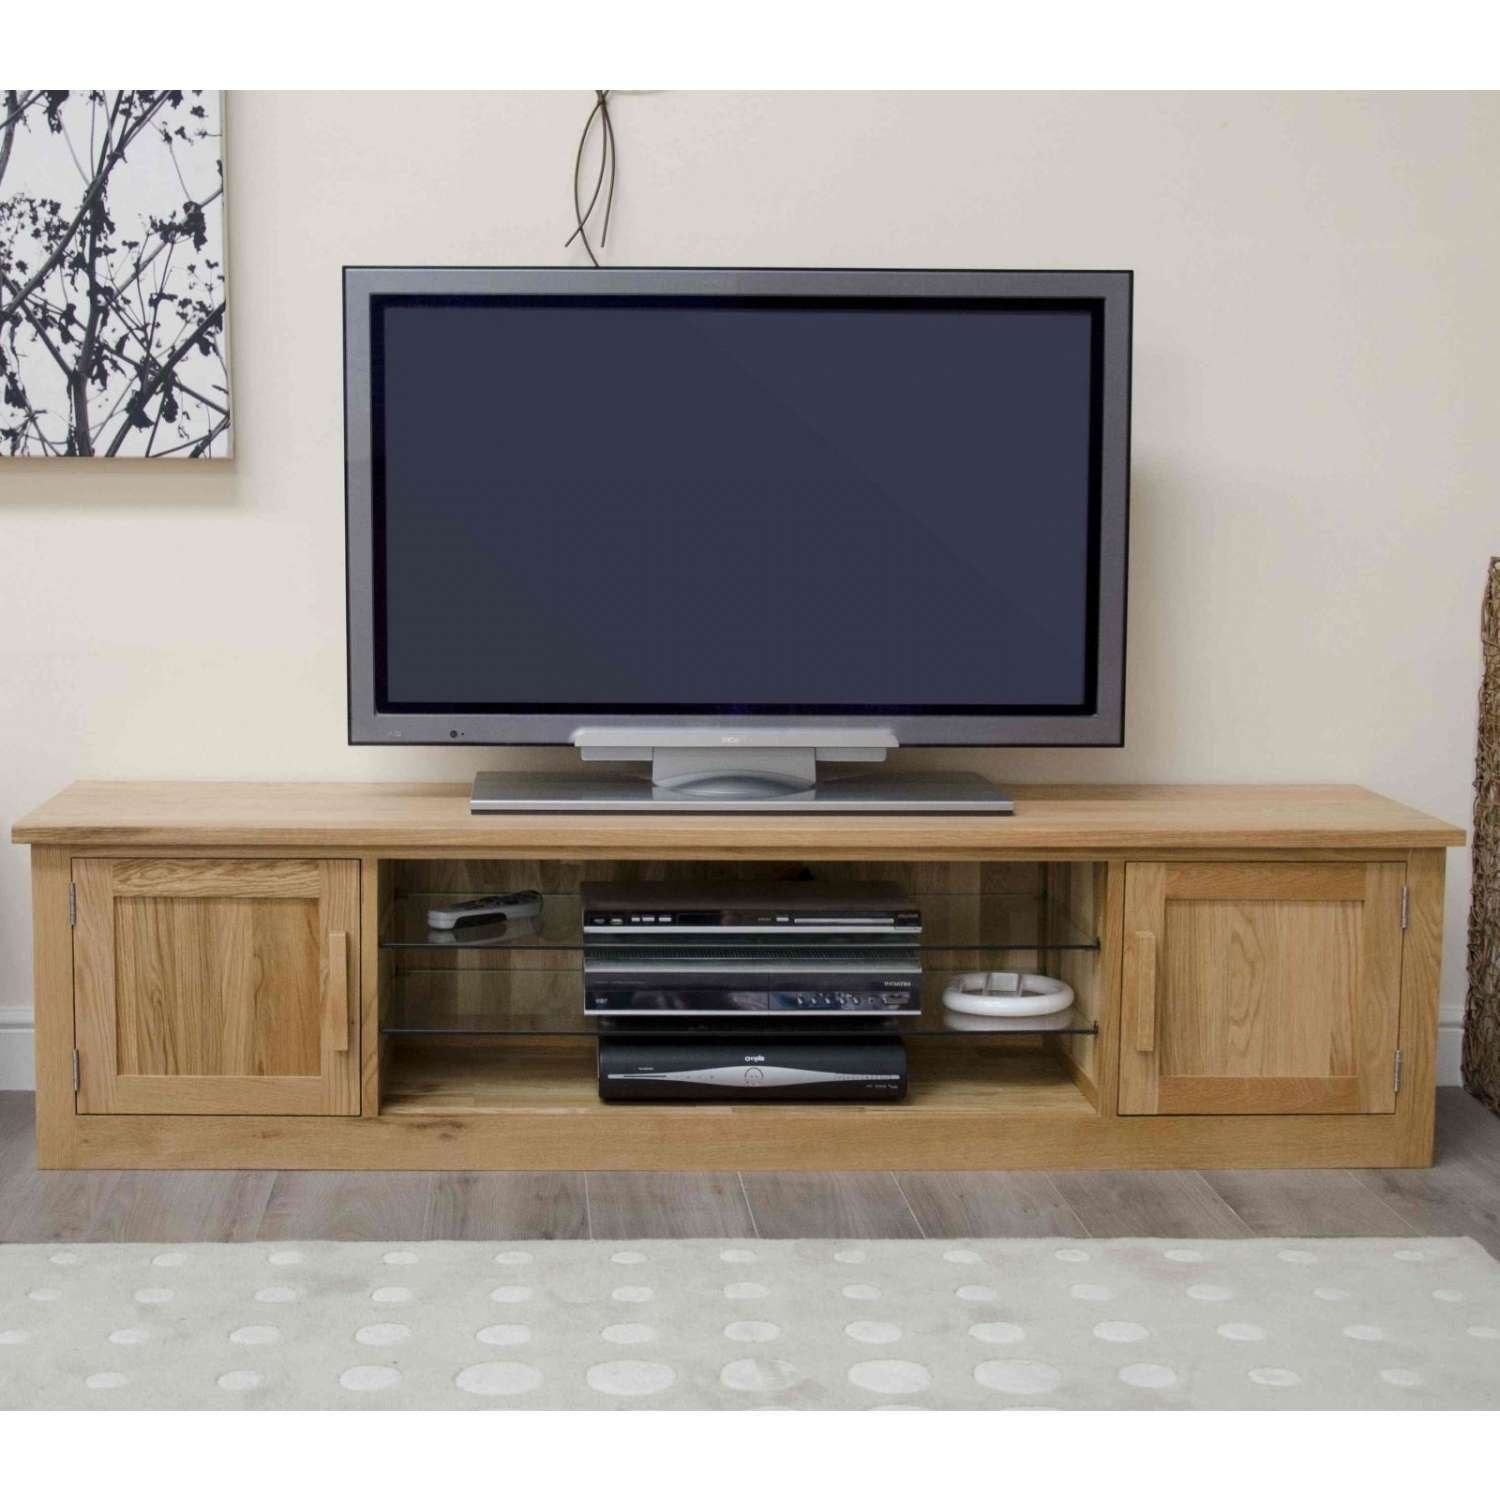 Arden Solid Oak Living Room Furniture Large Widescreen Tv Cabinet Pertaining To Low Oak Tv Stands (View 2 of 20)